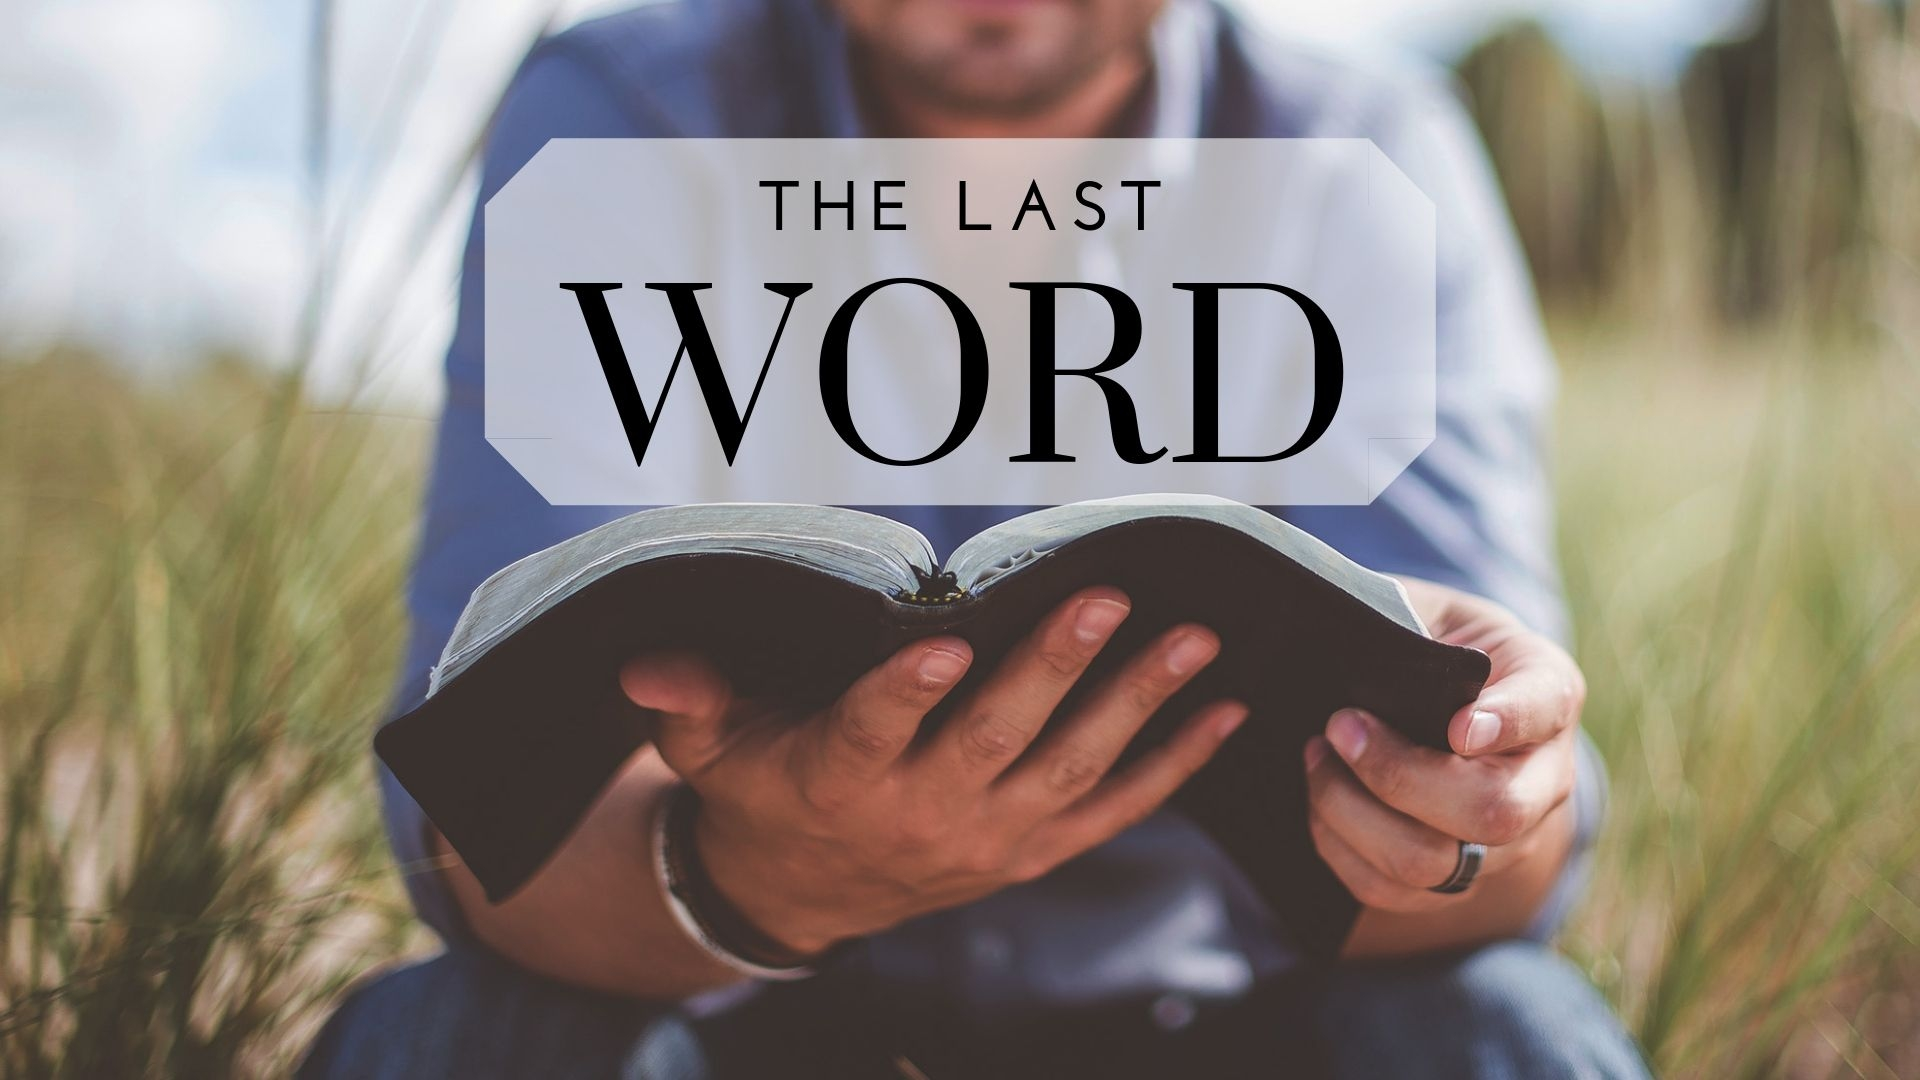 Sunday June 23, 2019 The Last Word - Rev. Michael Savage w/Lifeline Connect Ministry